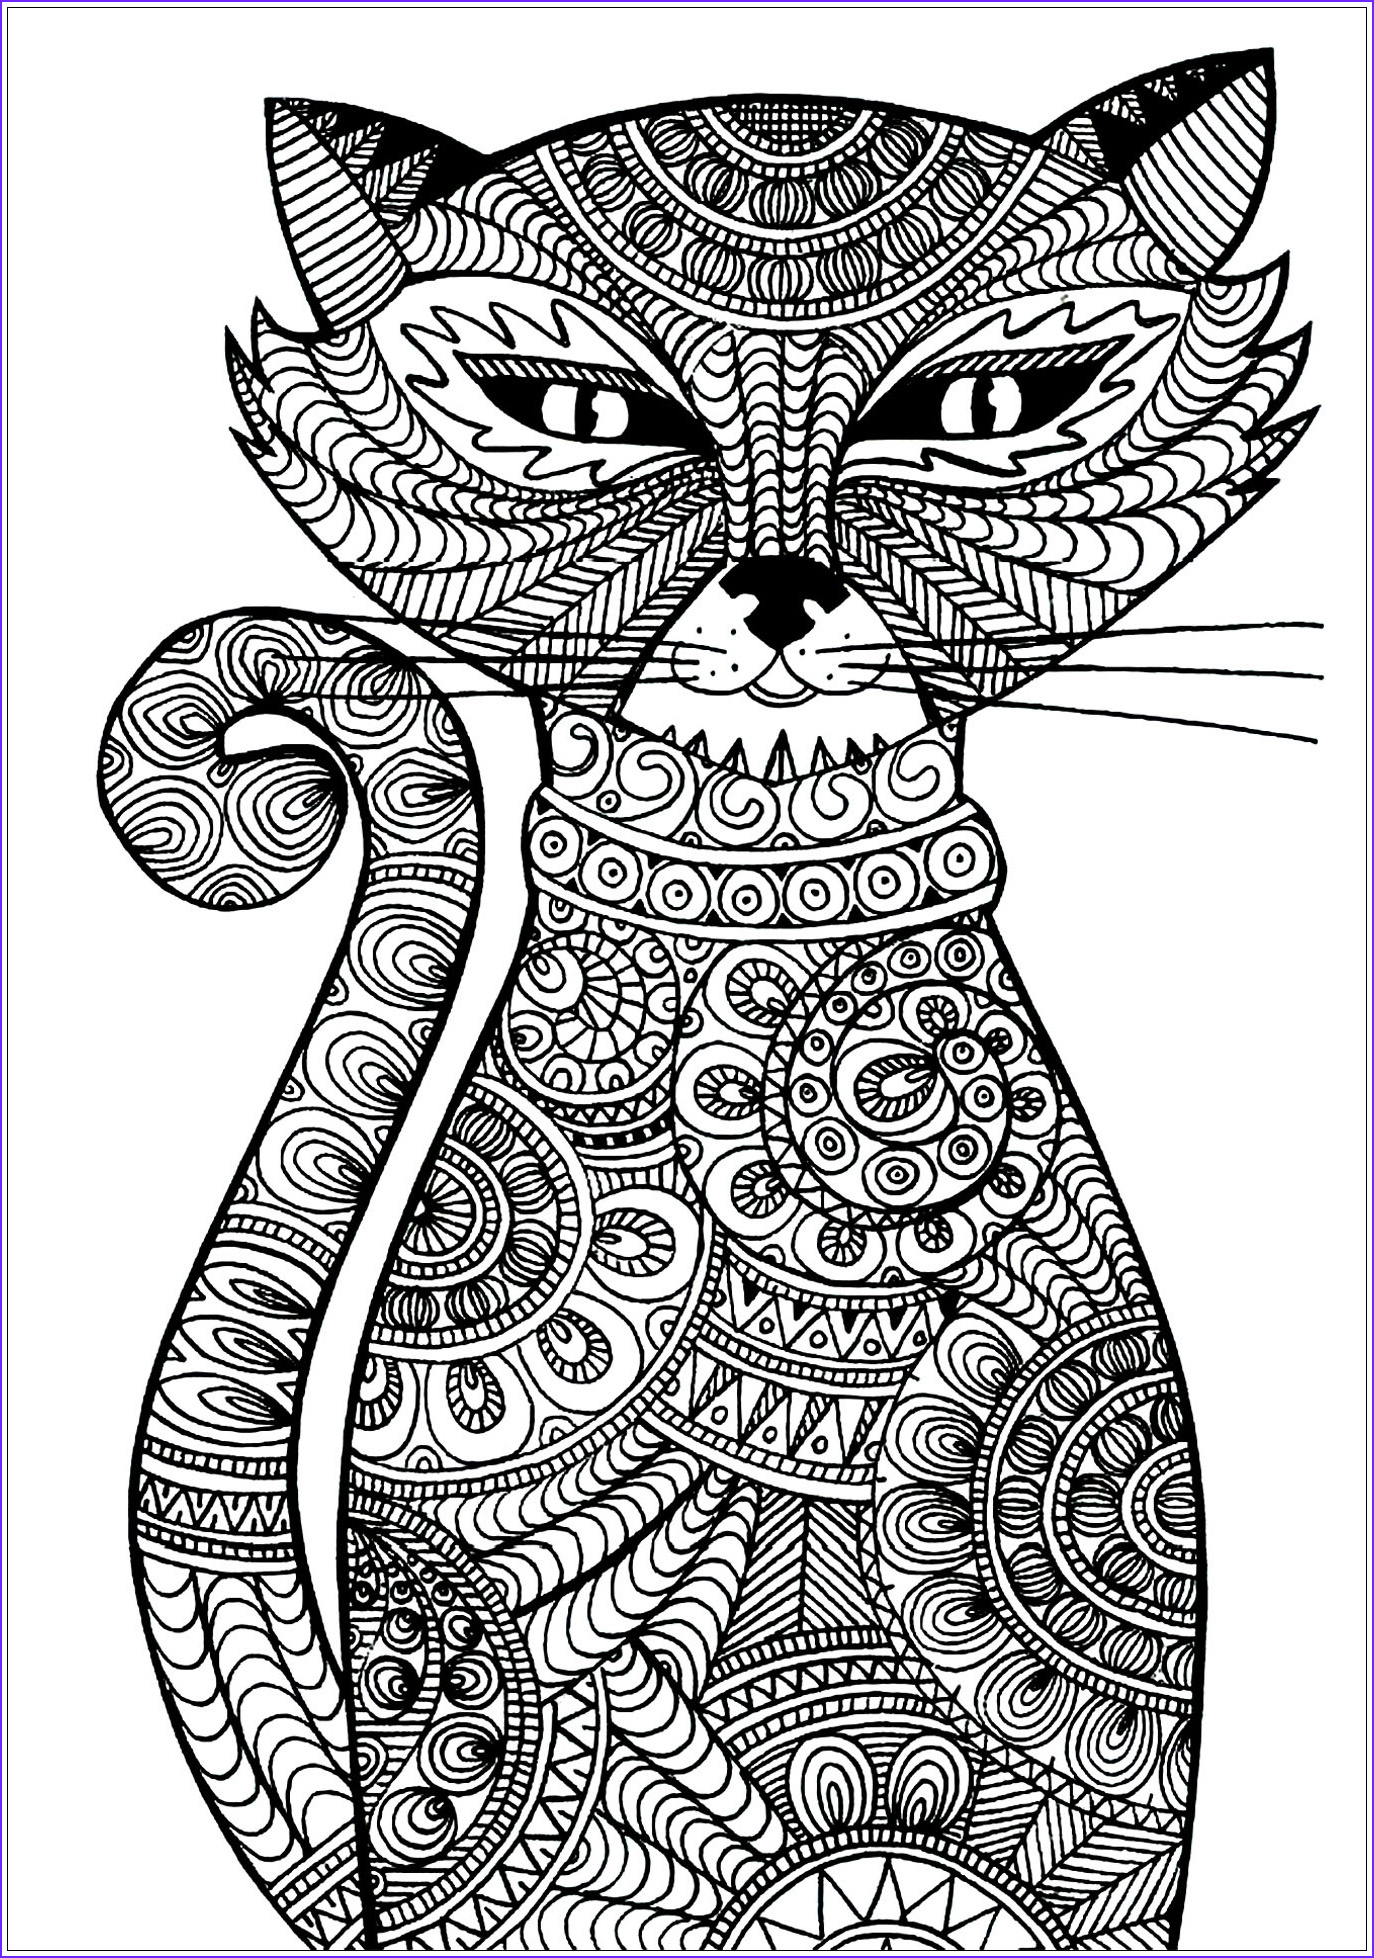 Color Coloring Book Luxury Collection Pet Coloring Pages for Adults